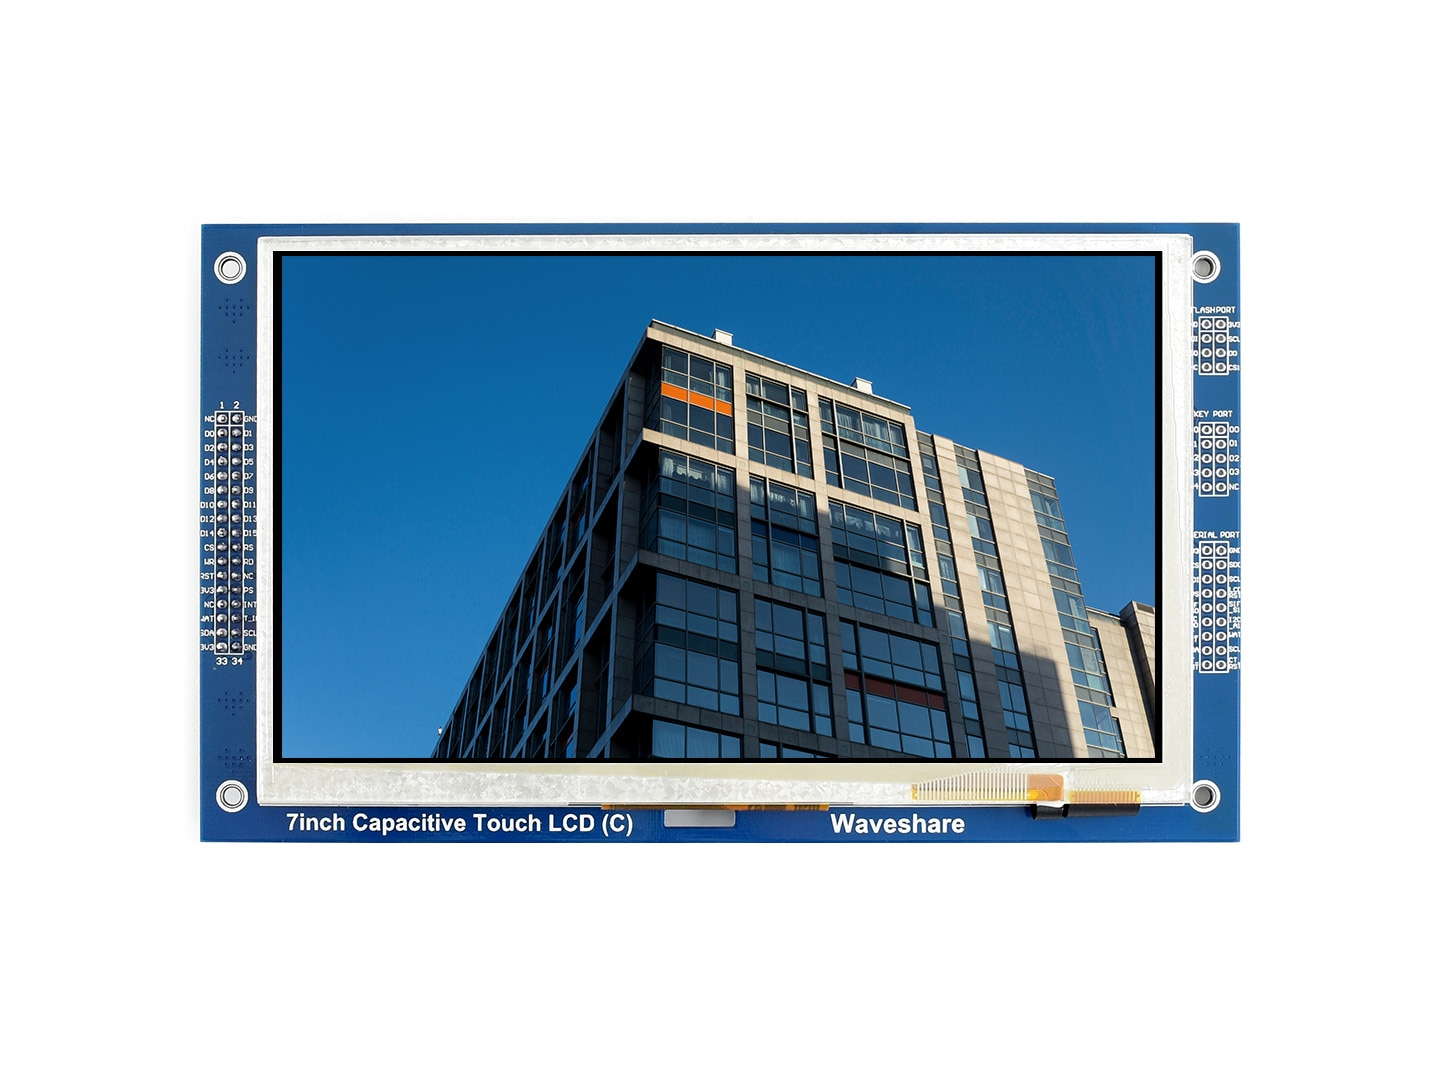 Waveshare 7 Inch 800*480 Multicolor Graphic LCD (C) With Capacitive Touch Screen GT911 TOUCH CONTROLLER TFT Display enlarge